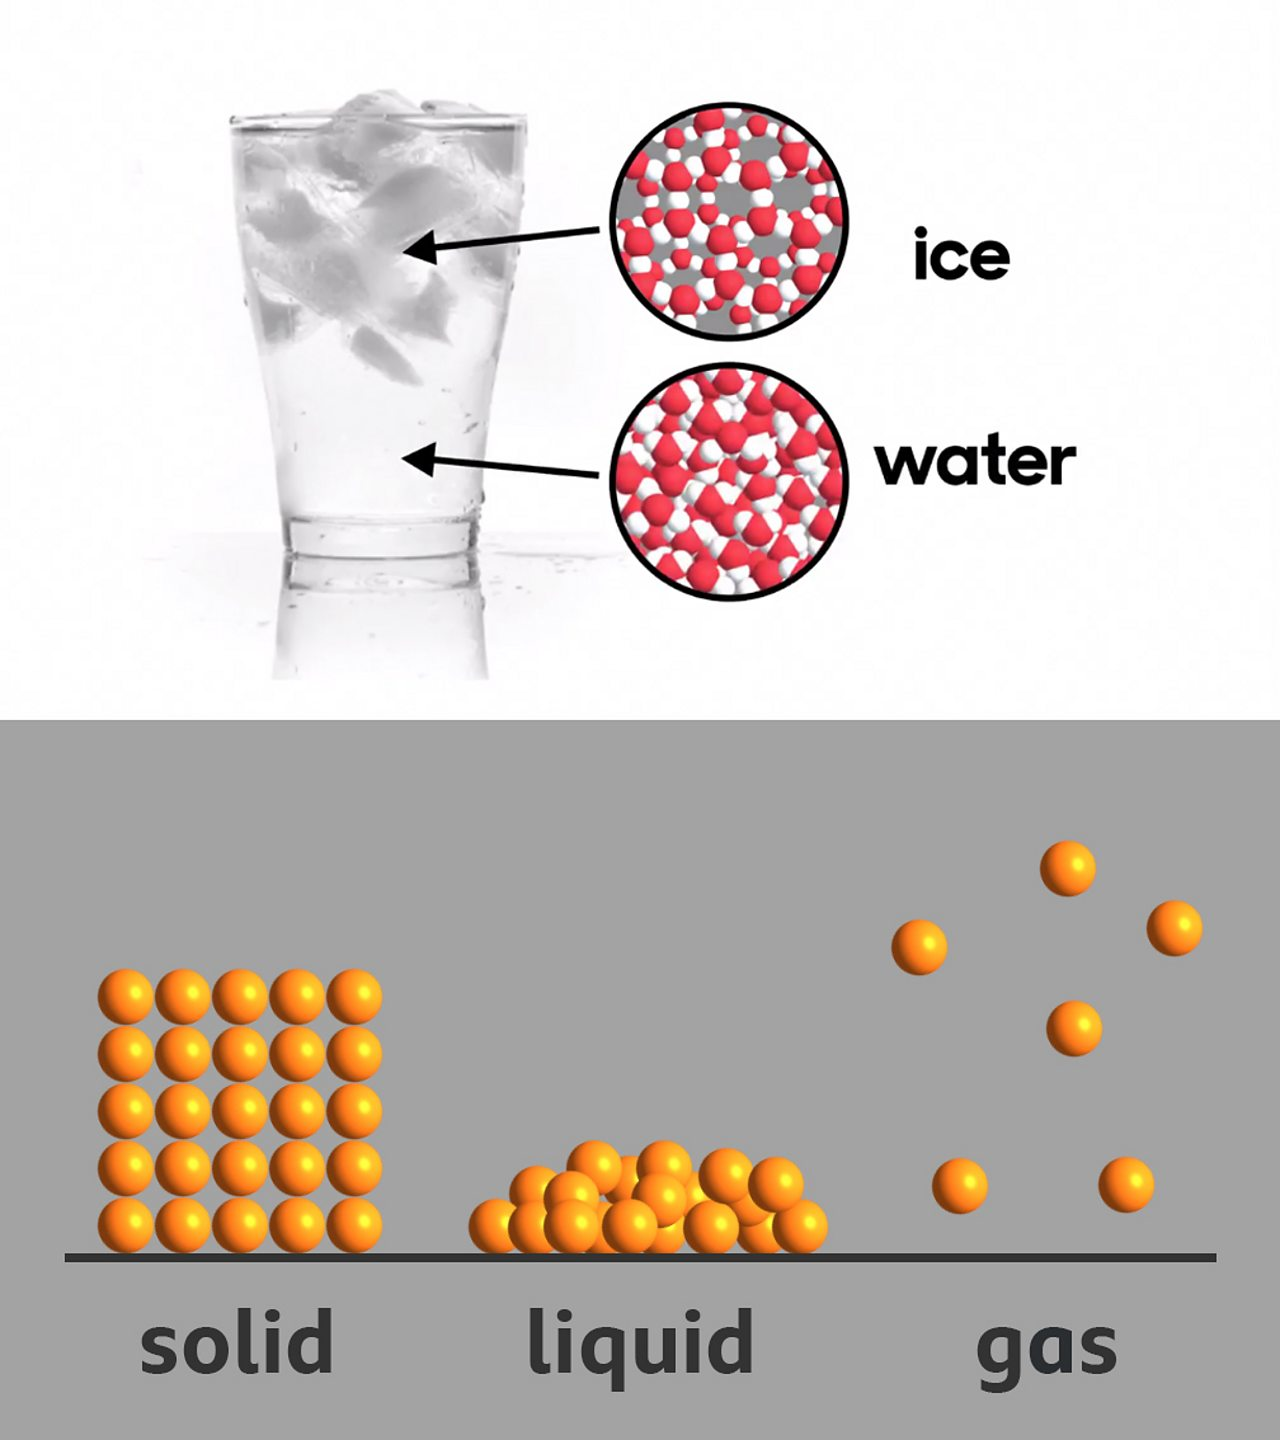 Picture of water in its ice and water state and a depiction of materials in solid, liquid and gas states.